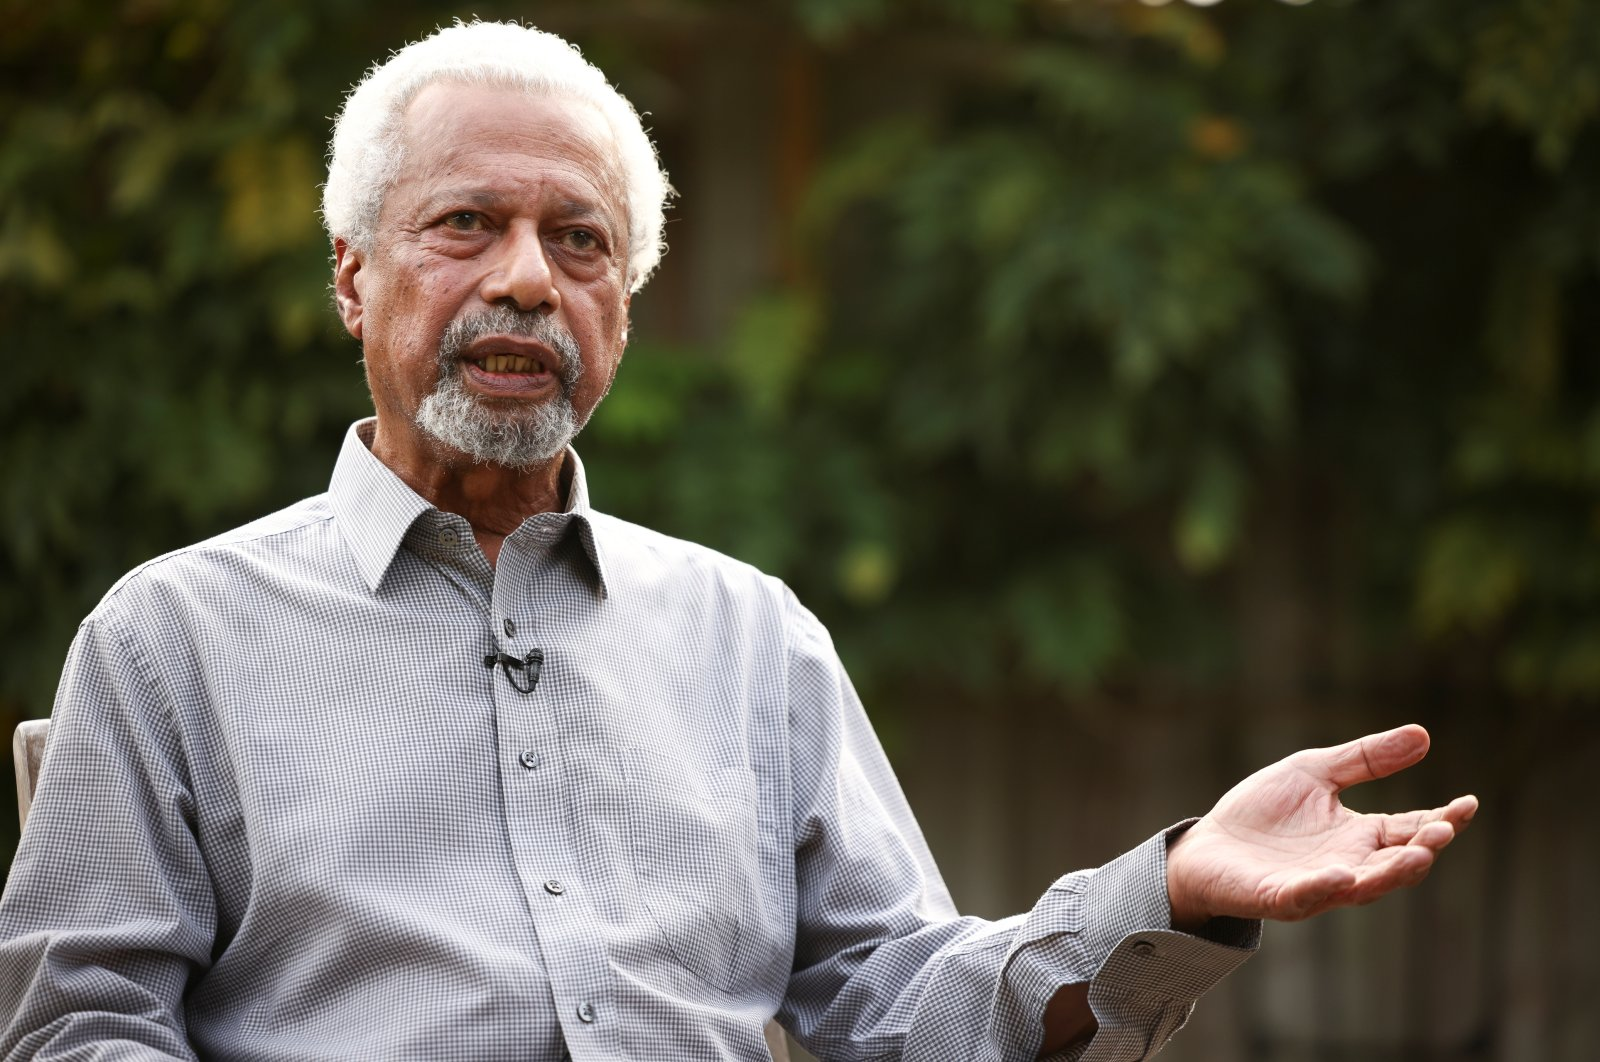 Tanzanian novelist Abdulrazak Gurnah, winner of the 2021 Nobel Prize for Literature, during an interview with Reuters at his home in Canterbury, Britain, Oct. 7, 2021. (Reuters Photo)